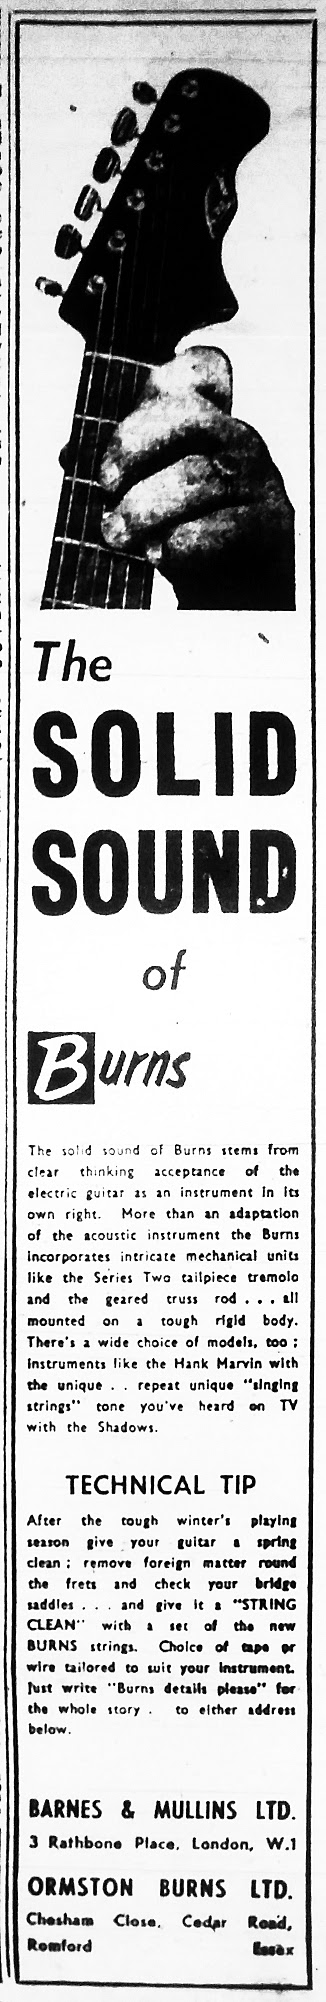 Burns Solid Sound advert